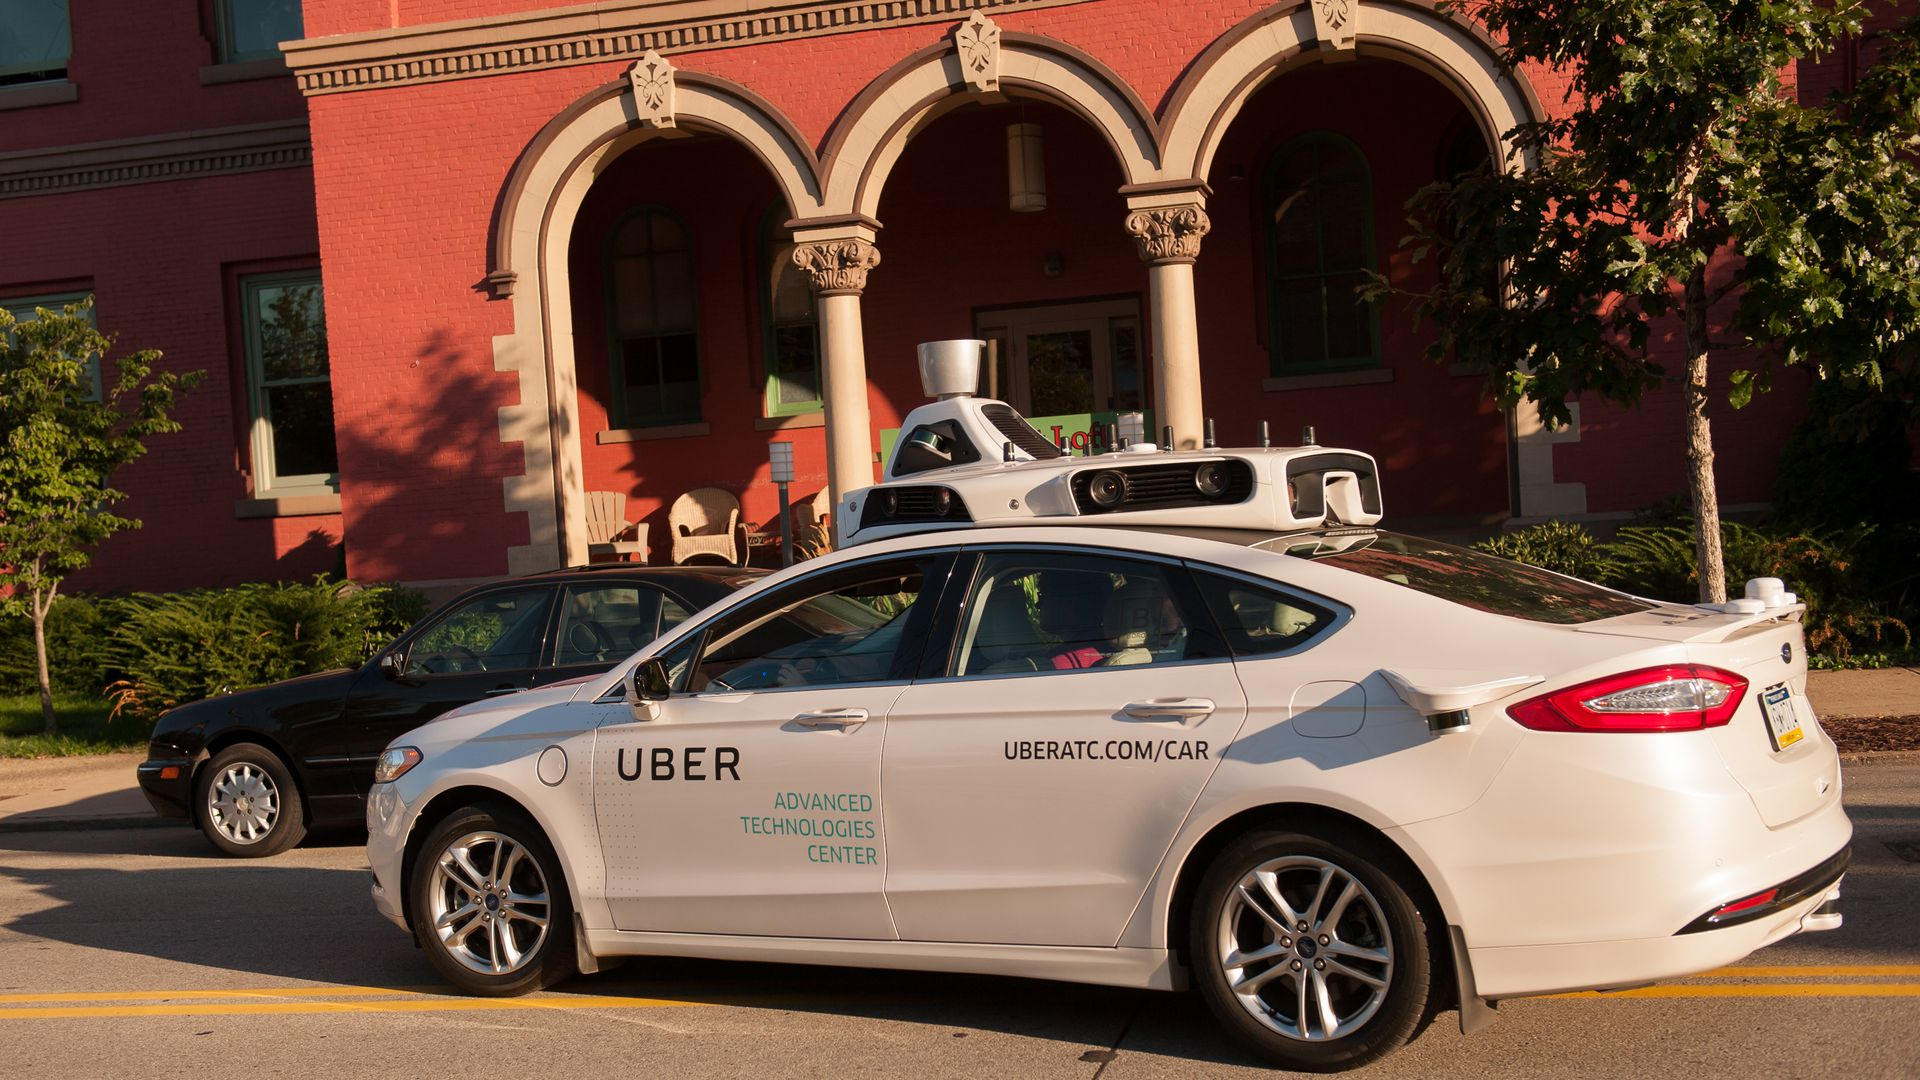 Self-driving Uber on the street in Pittsburgh